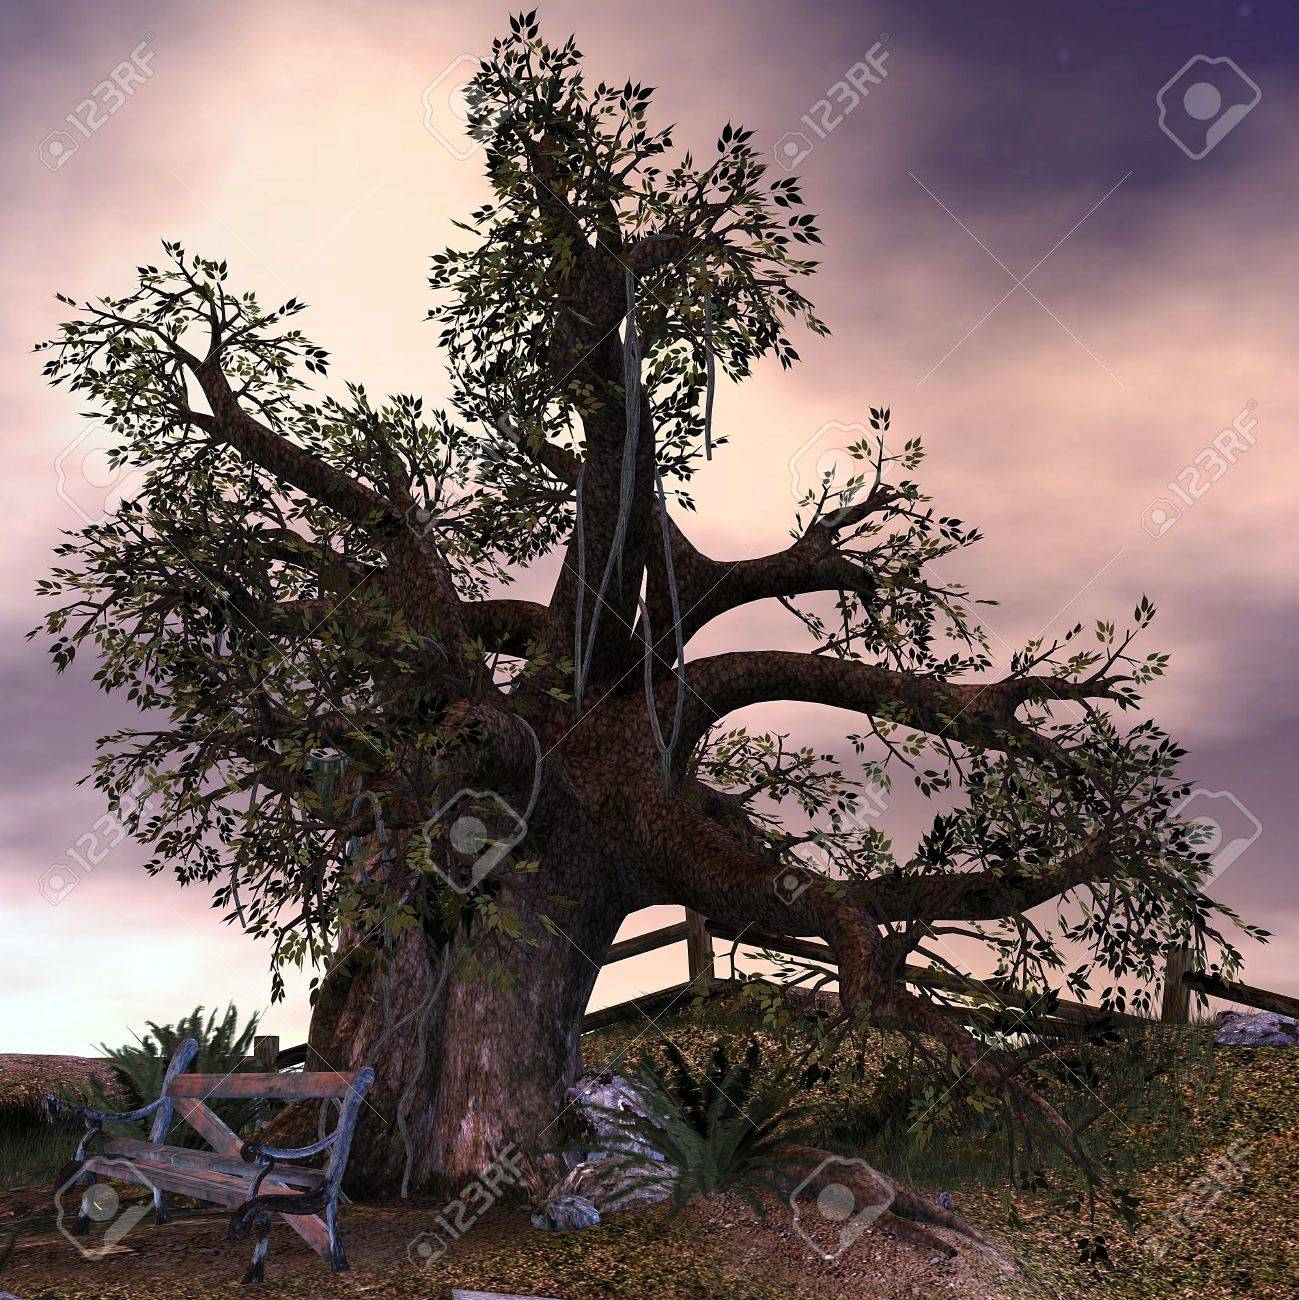 More similar stock images of 3d landscape with fall tree - 3d Rendering An Old Tree At An Abandoned Place As Illustration Stock Illustration 8053520